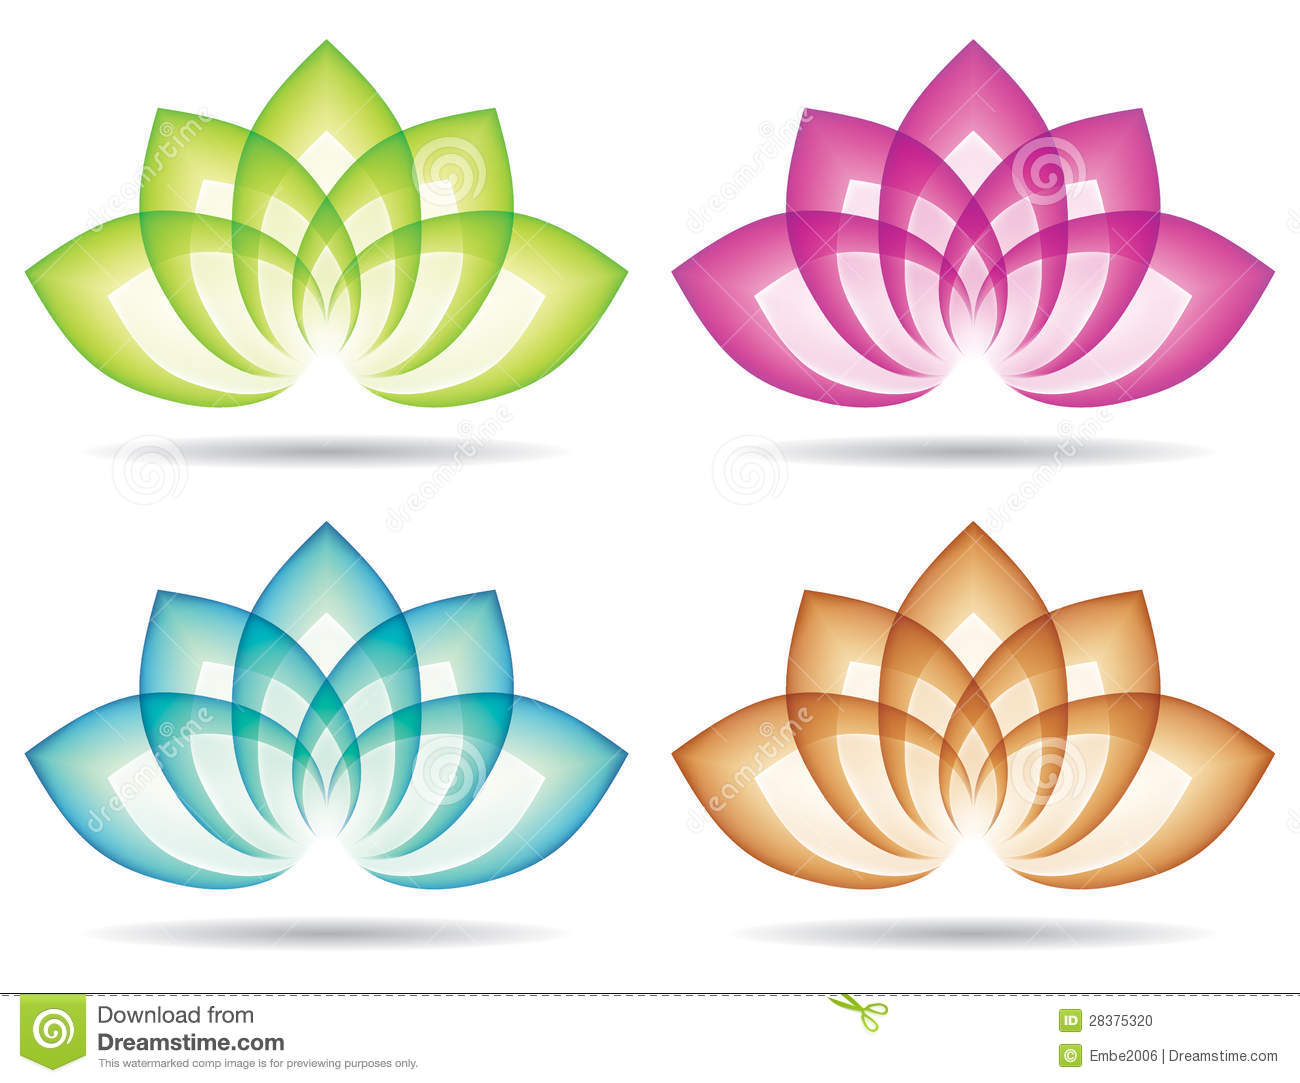 Various coloured lotus logos logo icon with leaves.